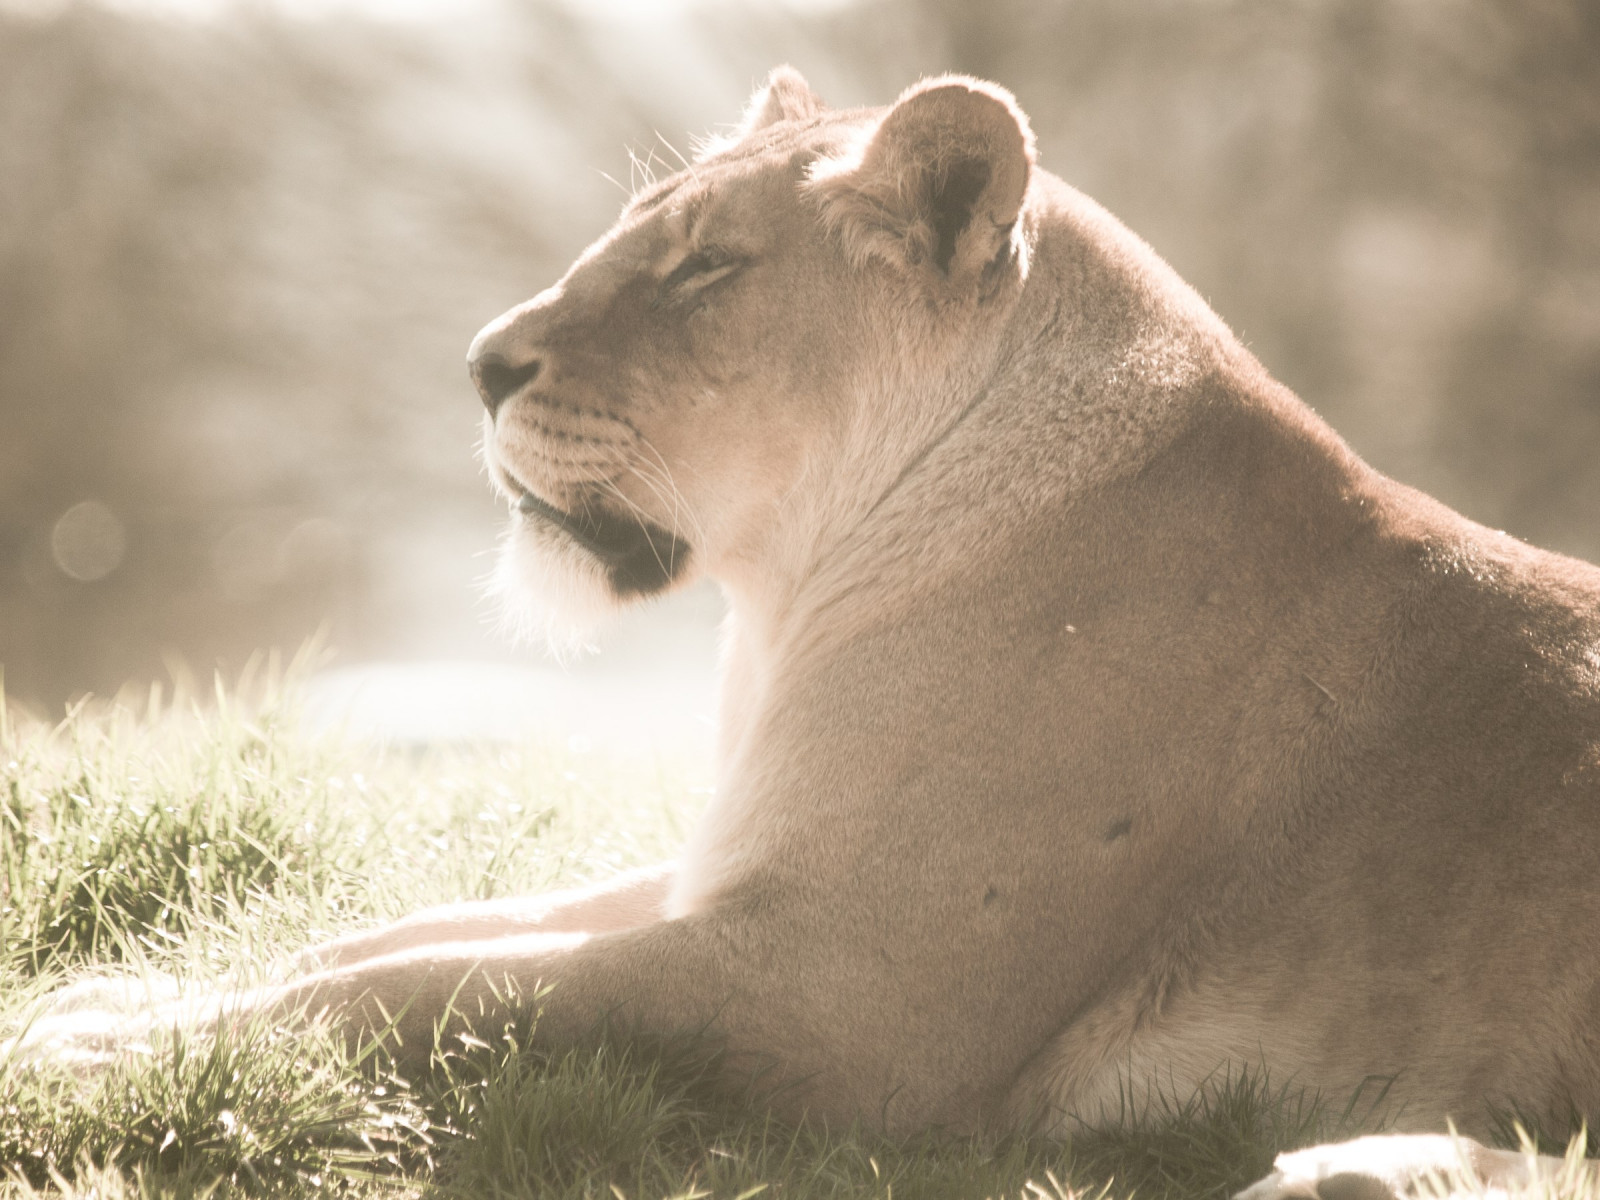 Lioness at Whipsnade Zoo wallpaper 1600x1200